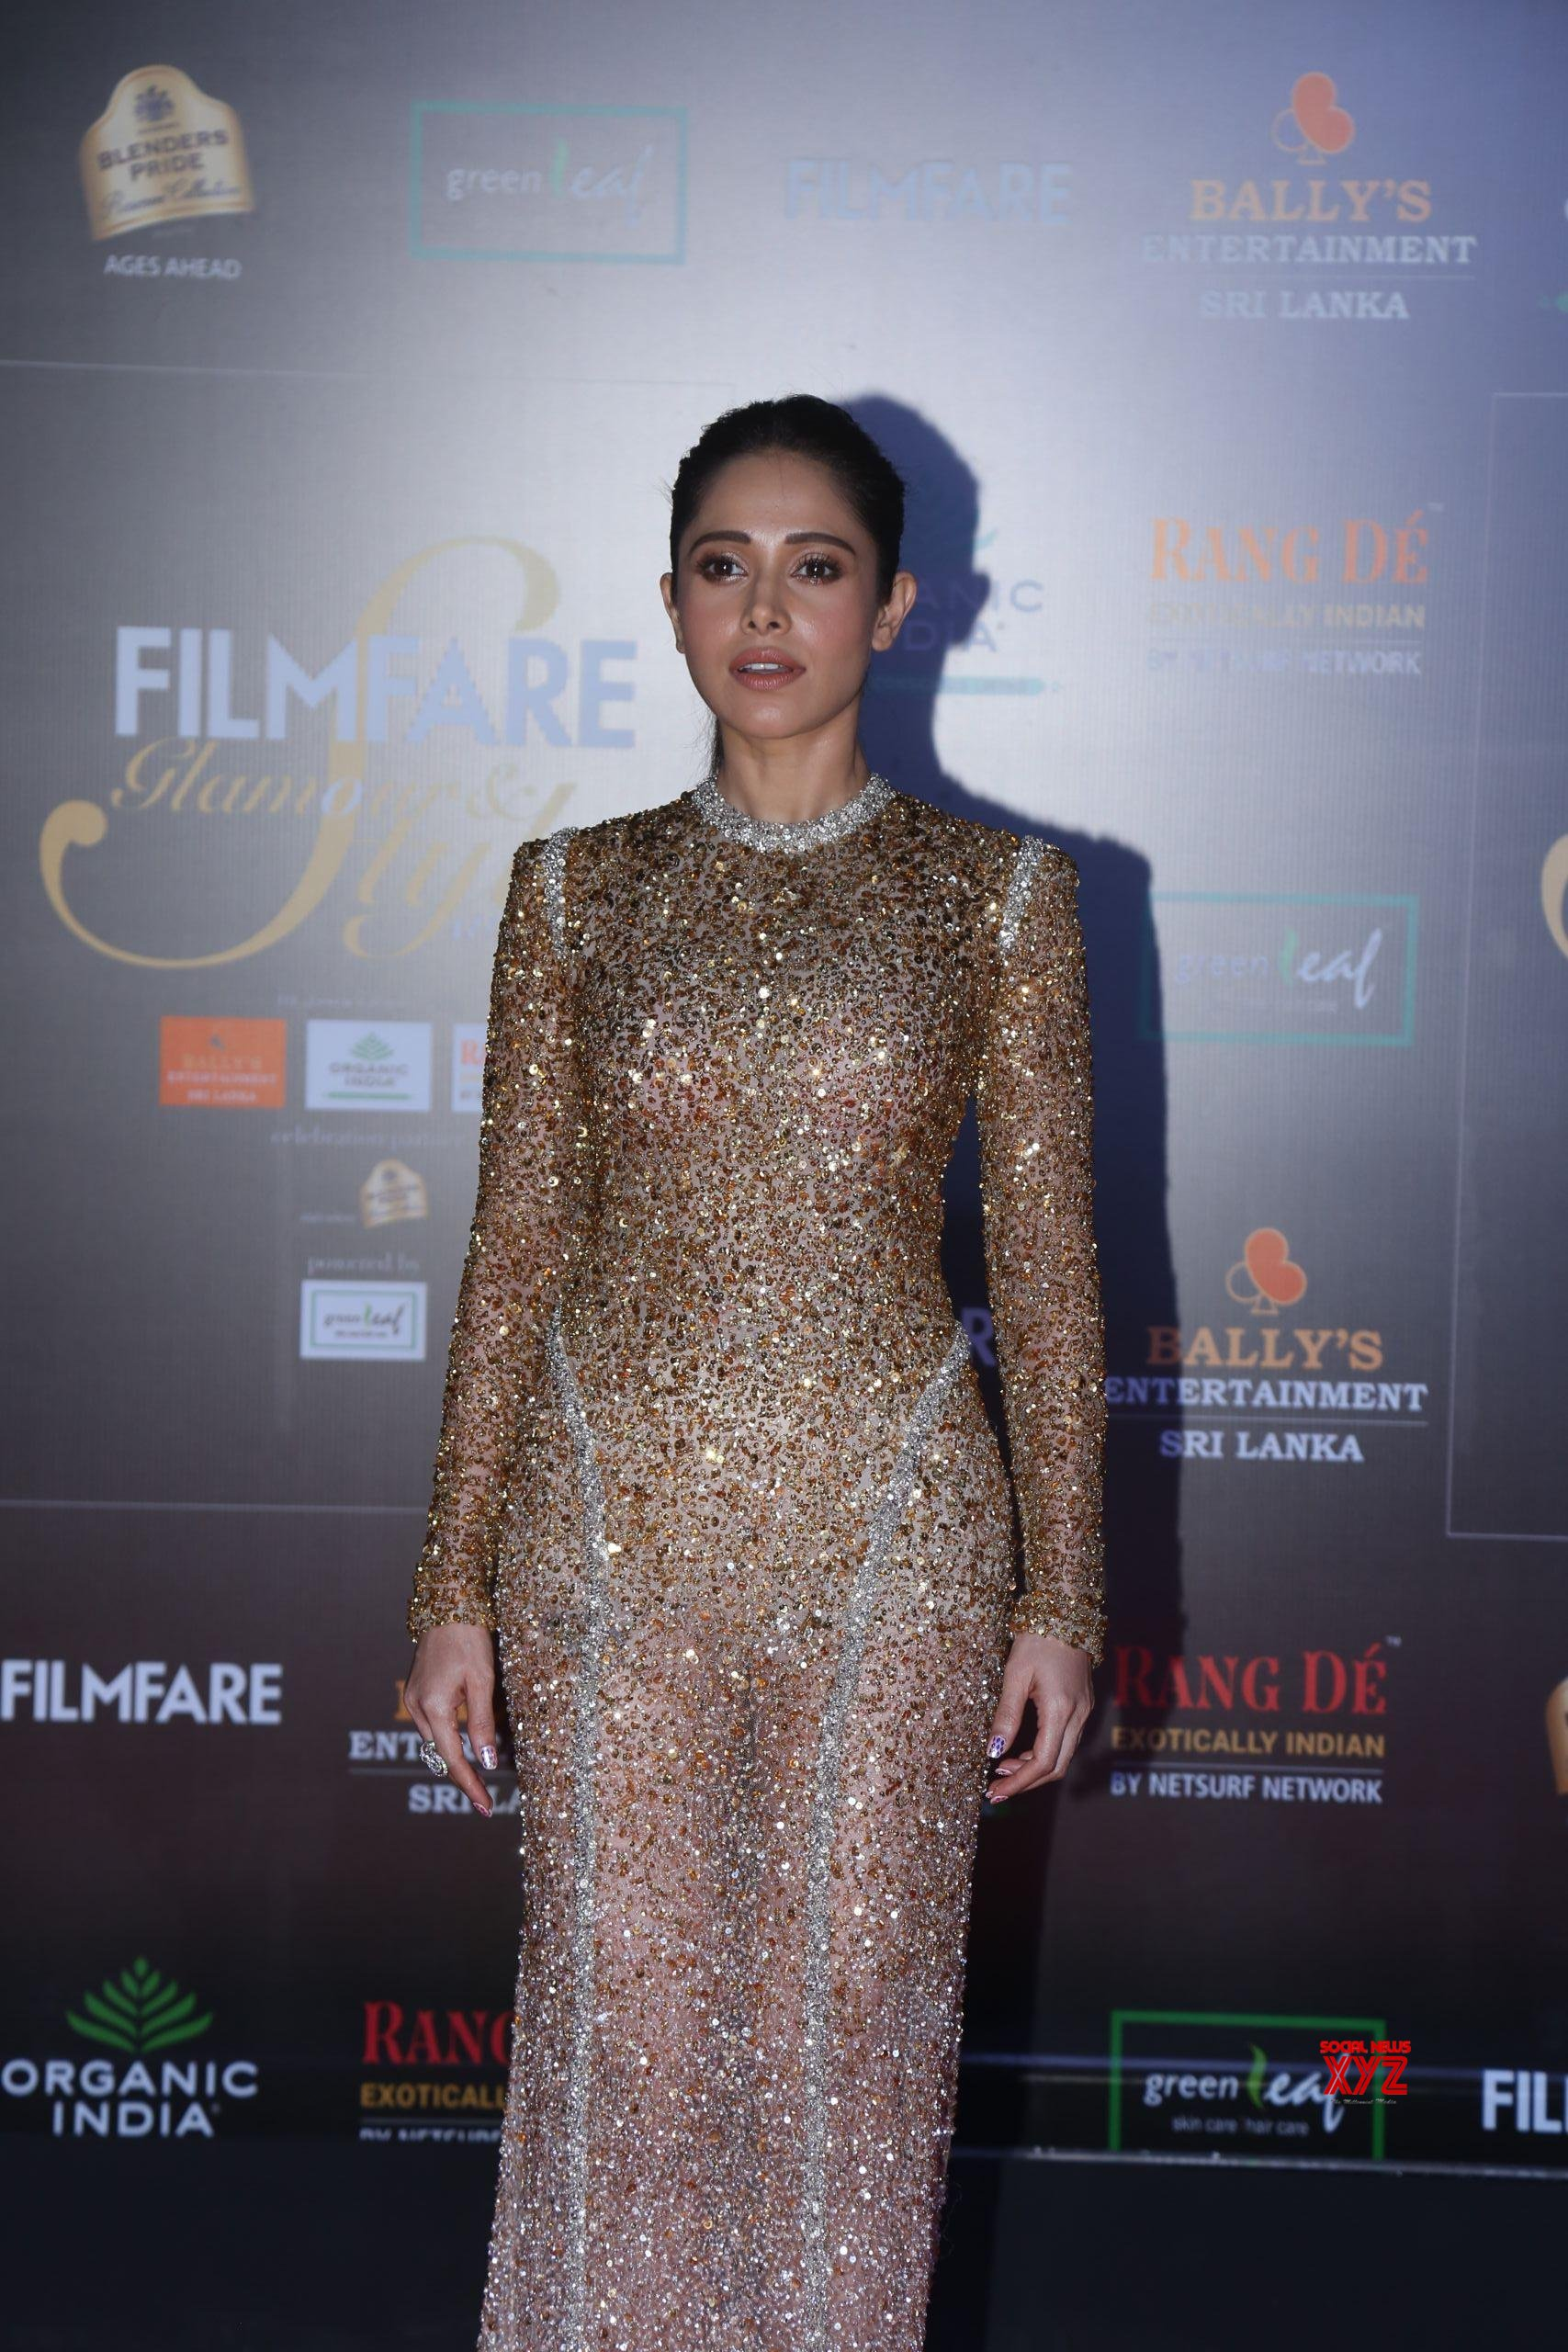 Actress Nushrat Bharucha Hot HD Stills From Filmfare Glamour And Style Awards 2019 Red Carpet